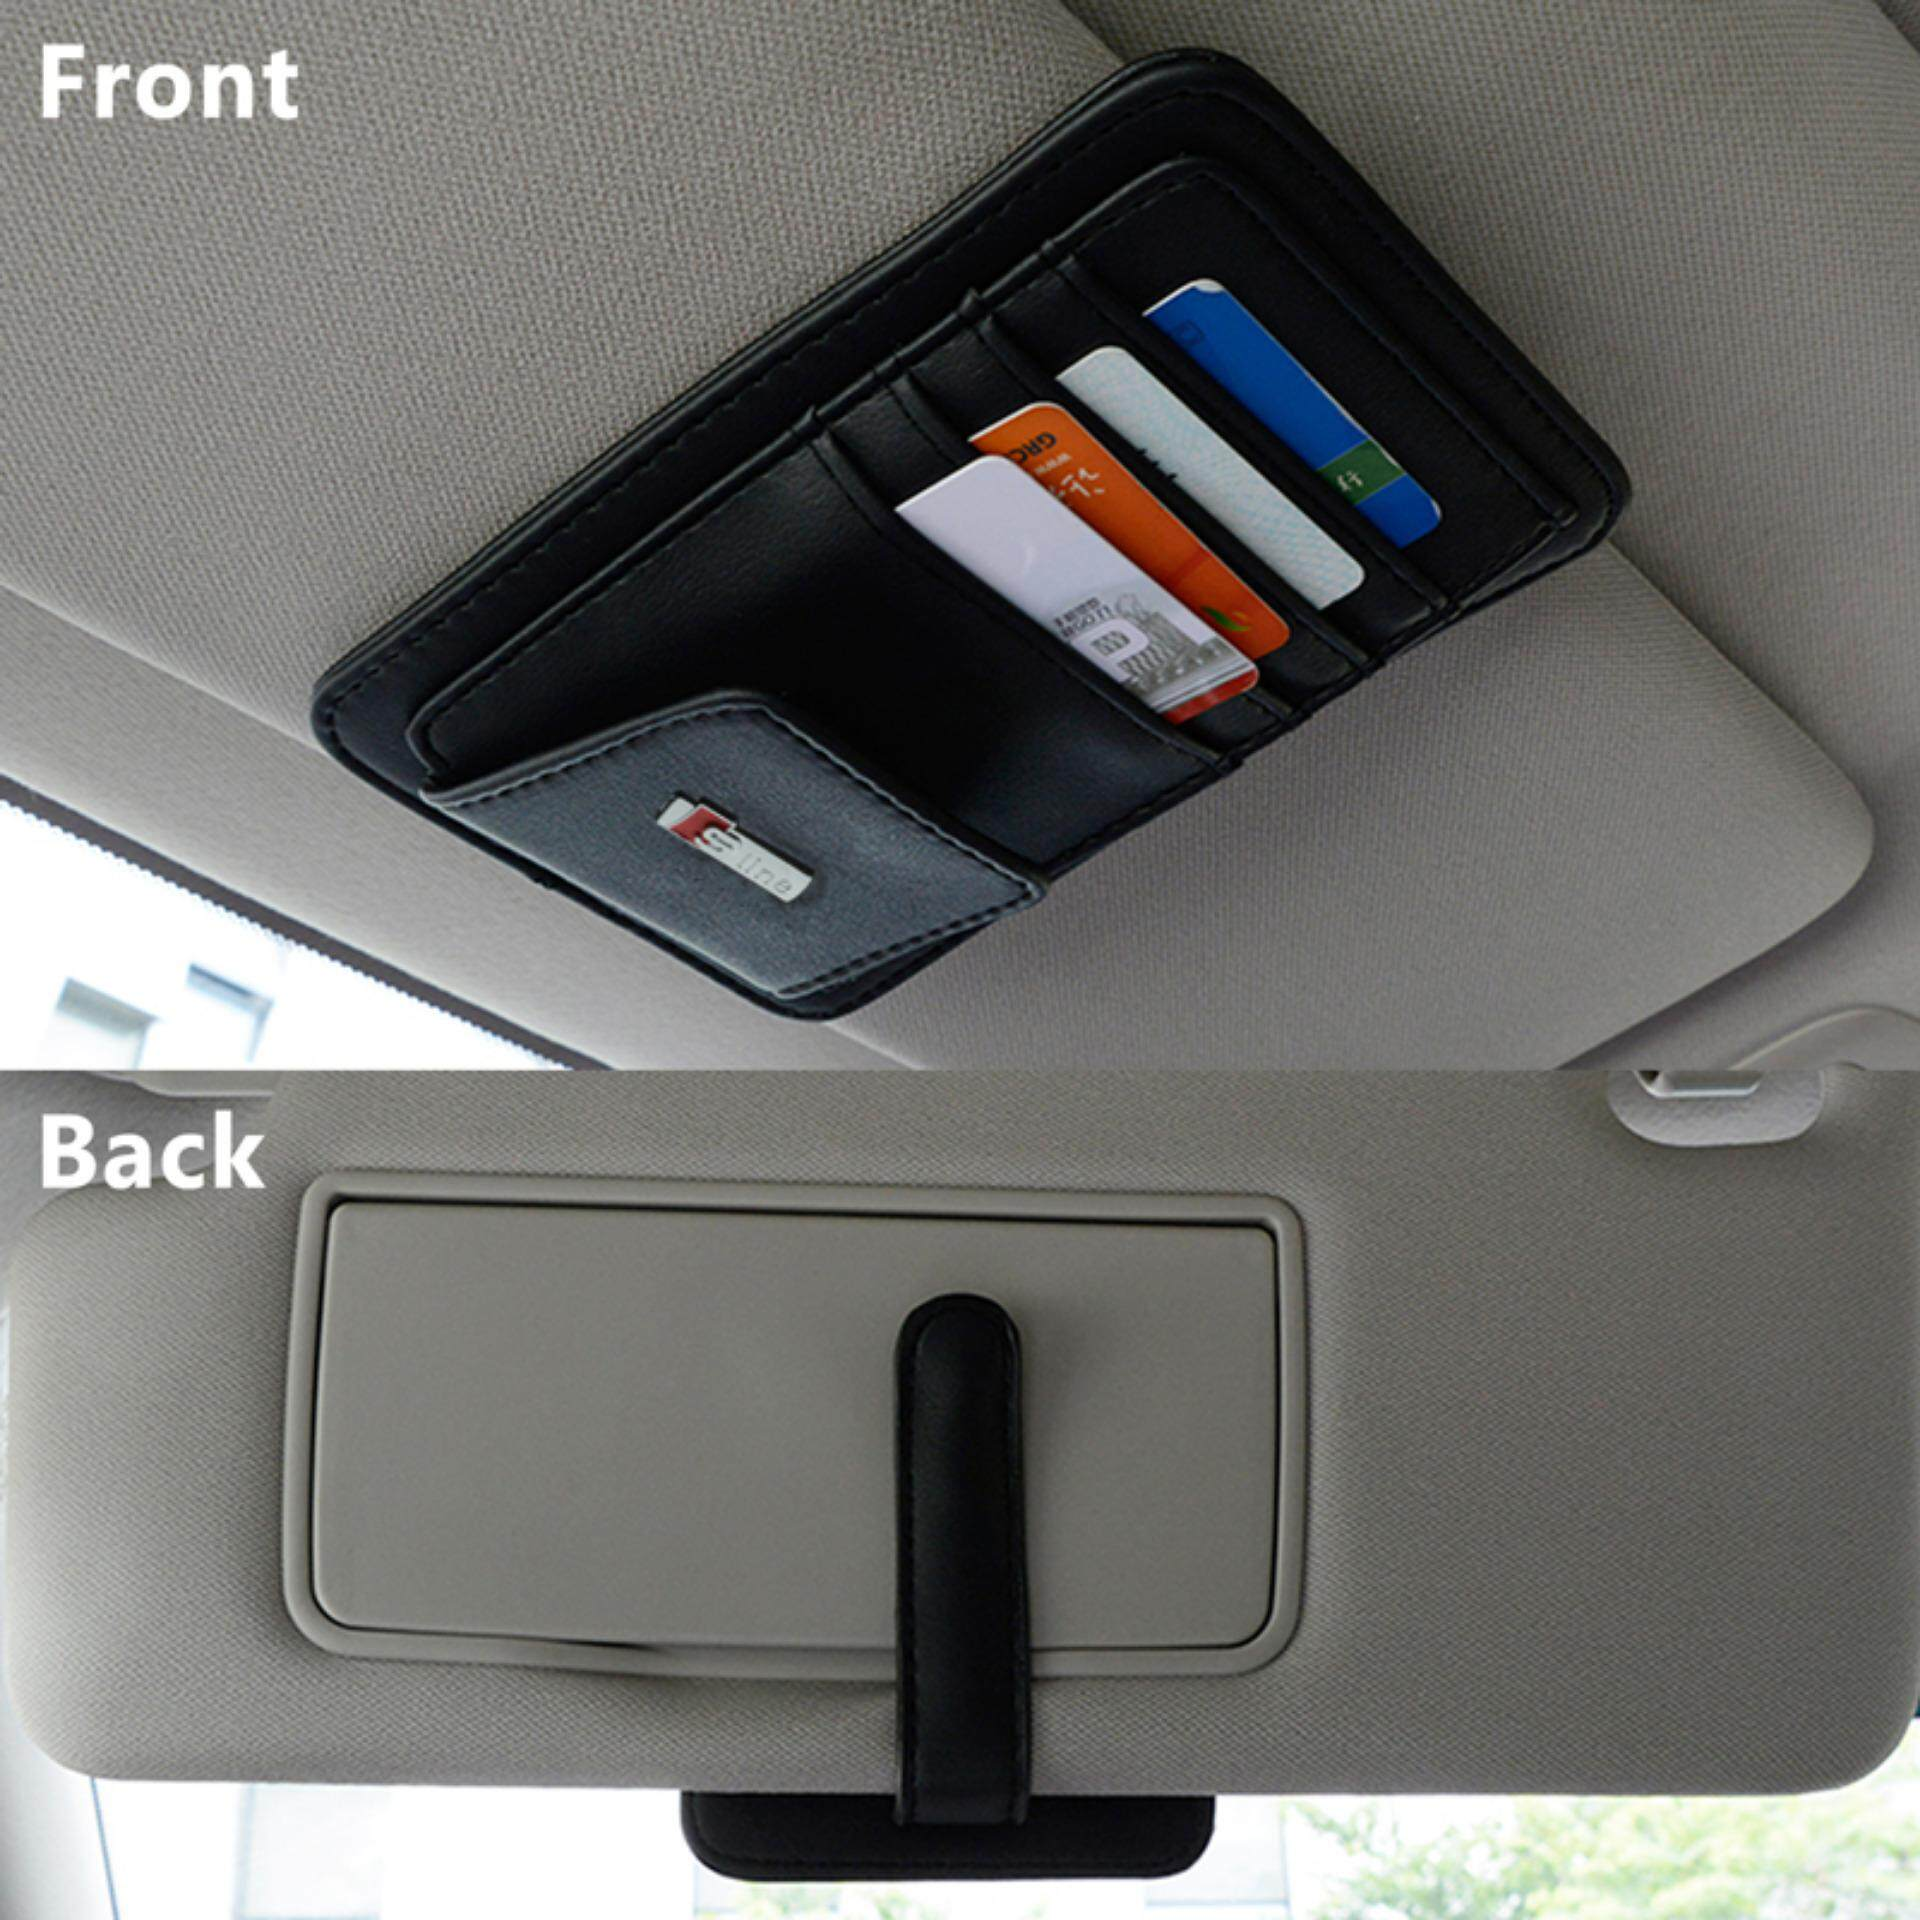 Buy Sell Cheapest 80 Pcs Sun Best Quality Product Deals G Smart Black Car Sunshade Pelindung Kaca Mobil Dari Sinar Matahari Visor Document File Holder Clip Card Slot Color With 5 Pocket For S Line Logo Audi A1 A3 A4 B6 B8 A6 C5 A7 Q3 Q5 Q7